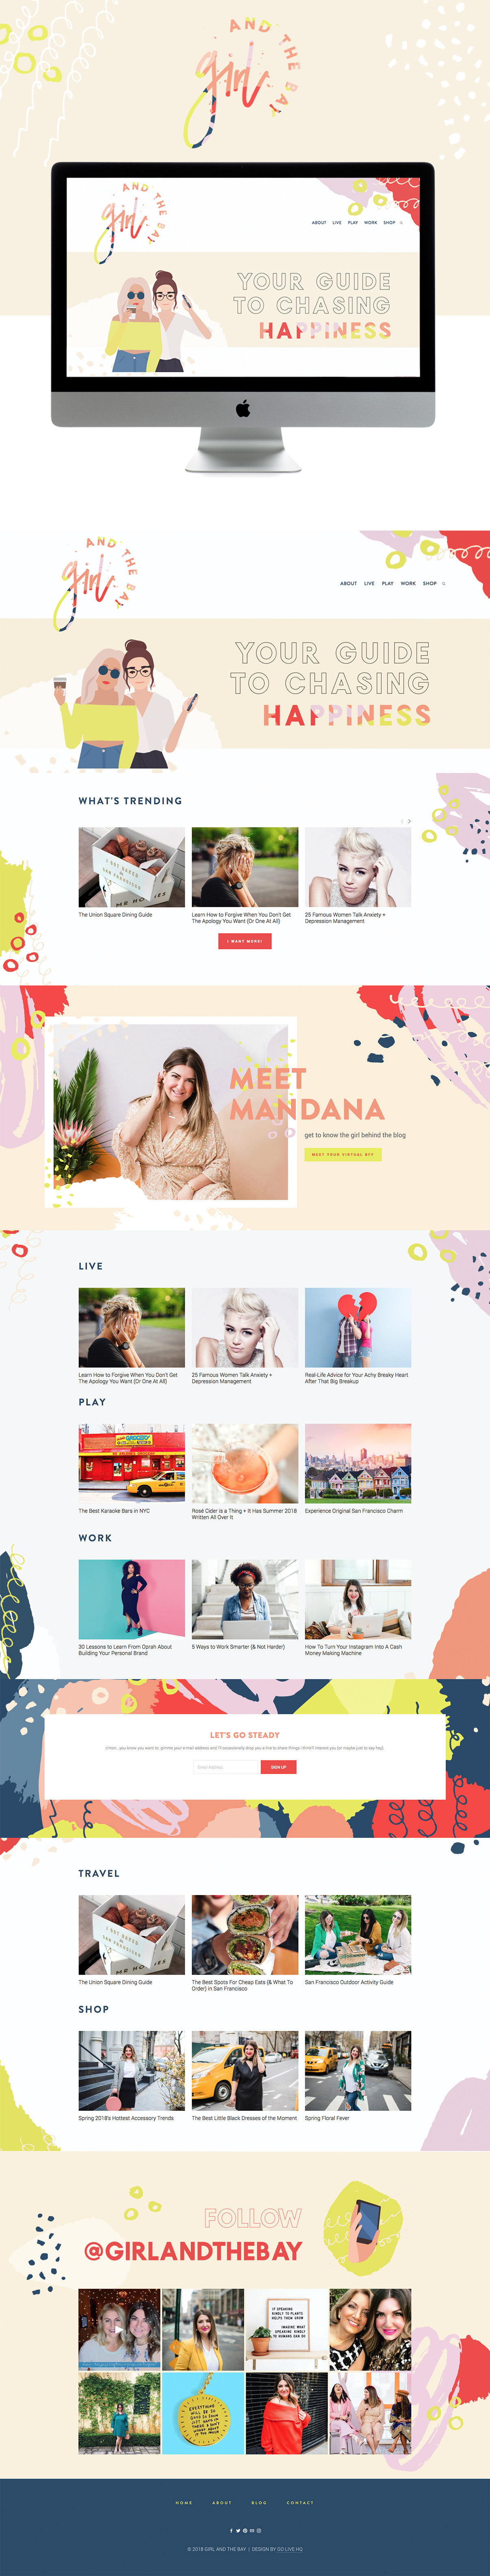 Creative, Colorful Website Design for Lifestyle Blog   Site Design by Go Live HQ